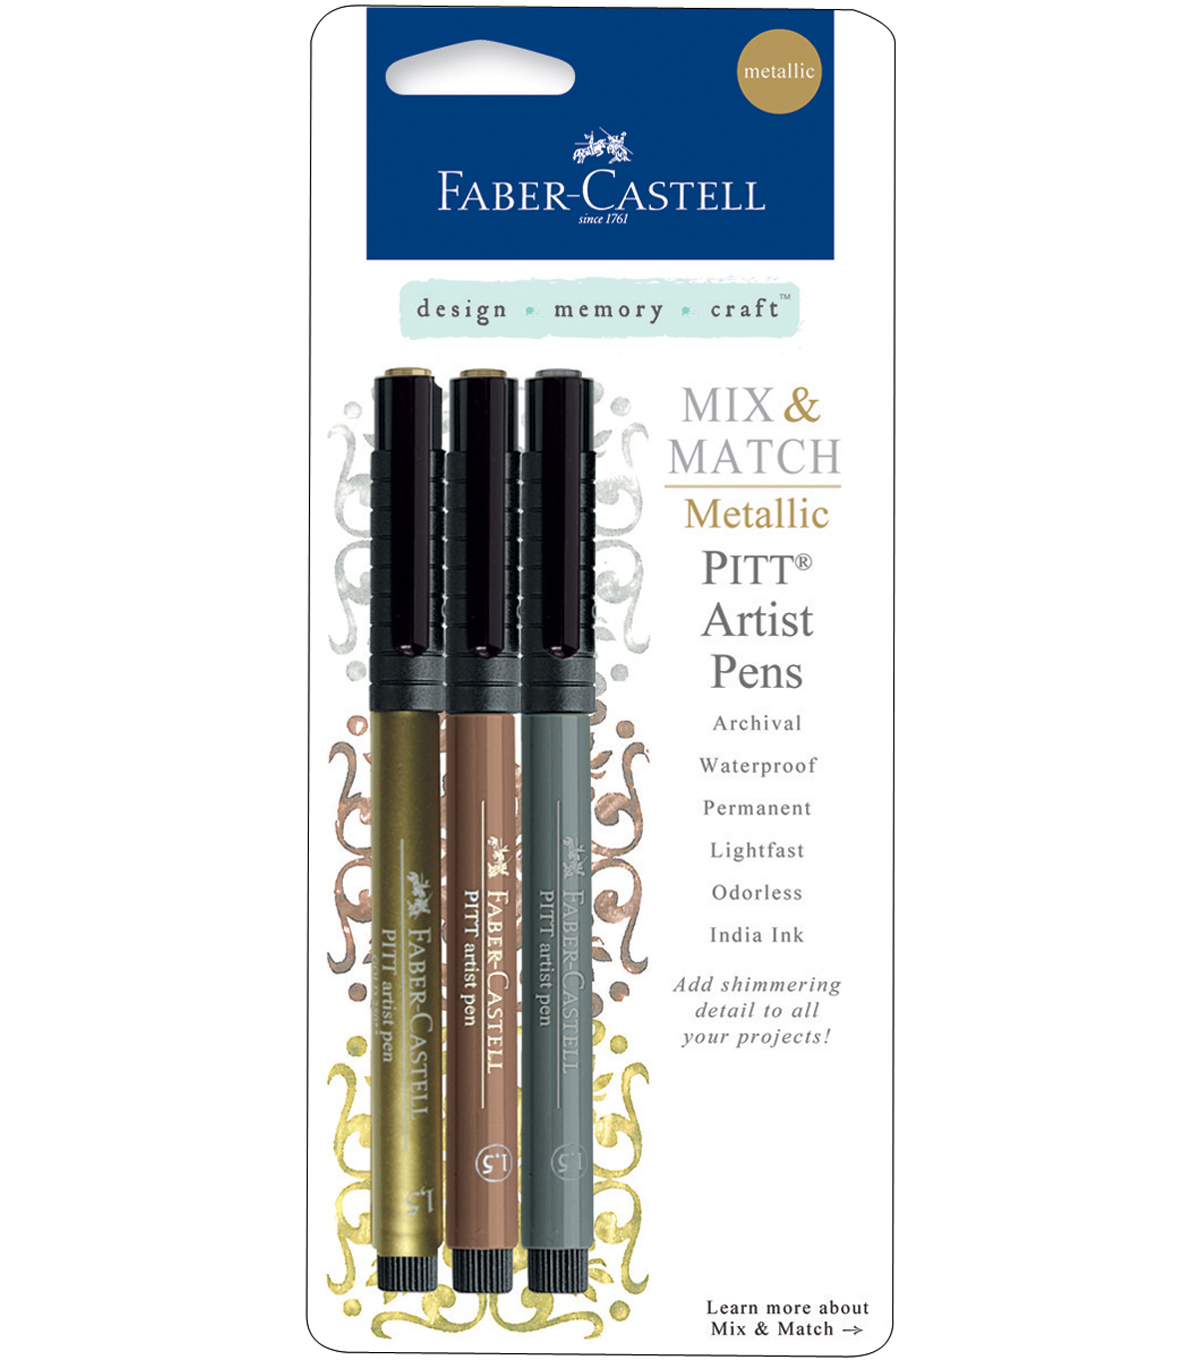 Mix & Match Metallic Pitt Artist Pens 3/Pkg-Classic-Gold, Copper, Silver